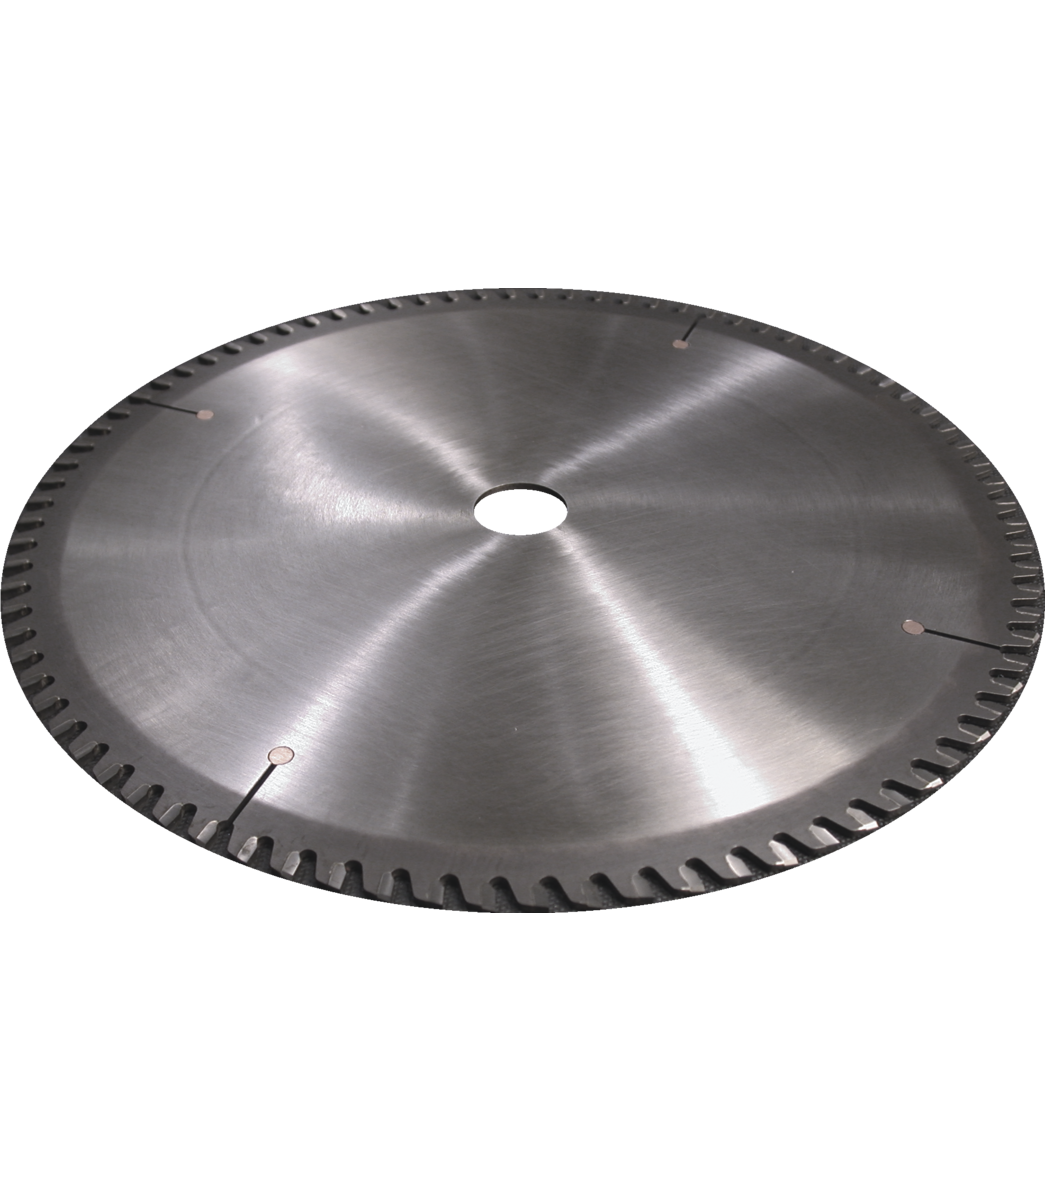 Non-Ferrous Carbide Circular Saw Blade 350mm x 32mm x 3.4mm x 108T For J-CK350-2/4K